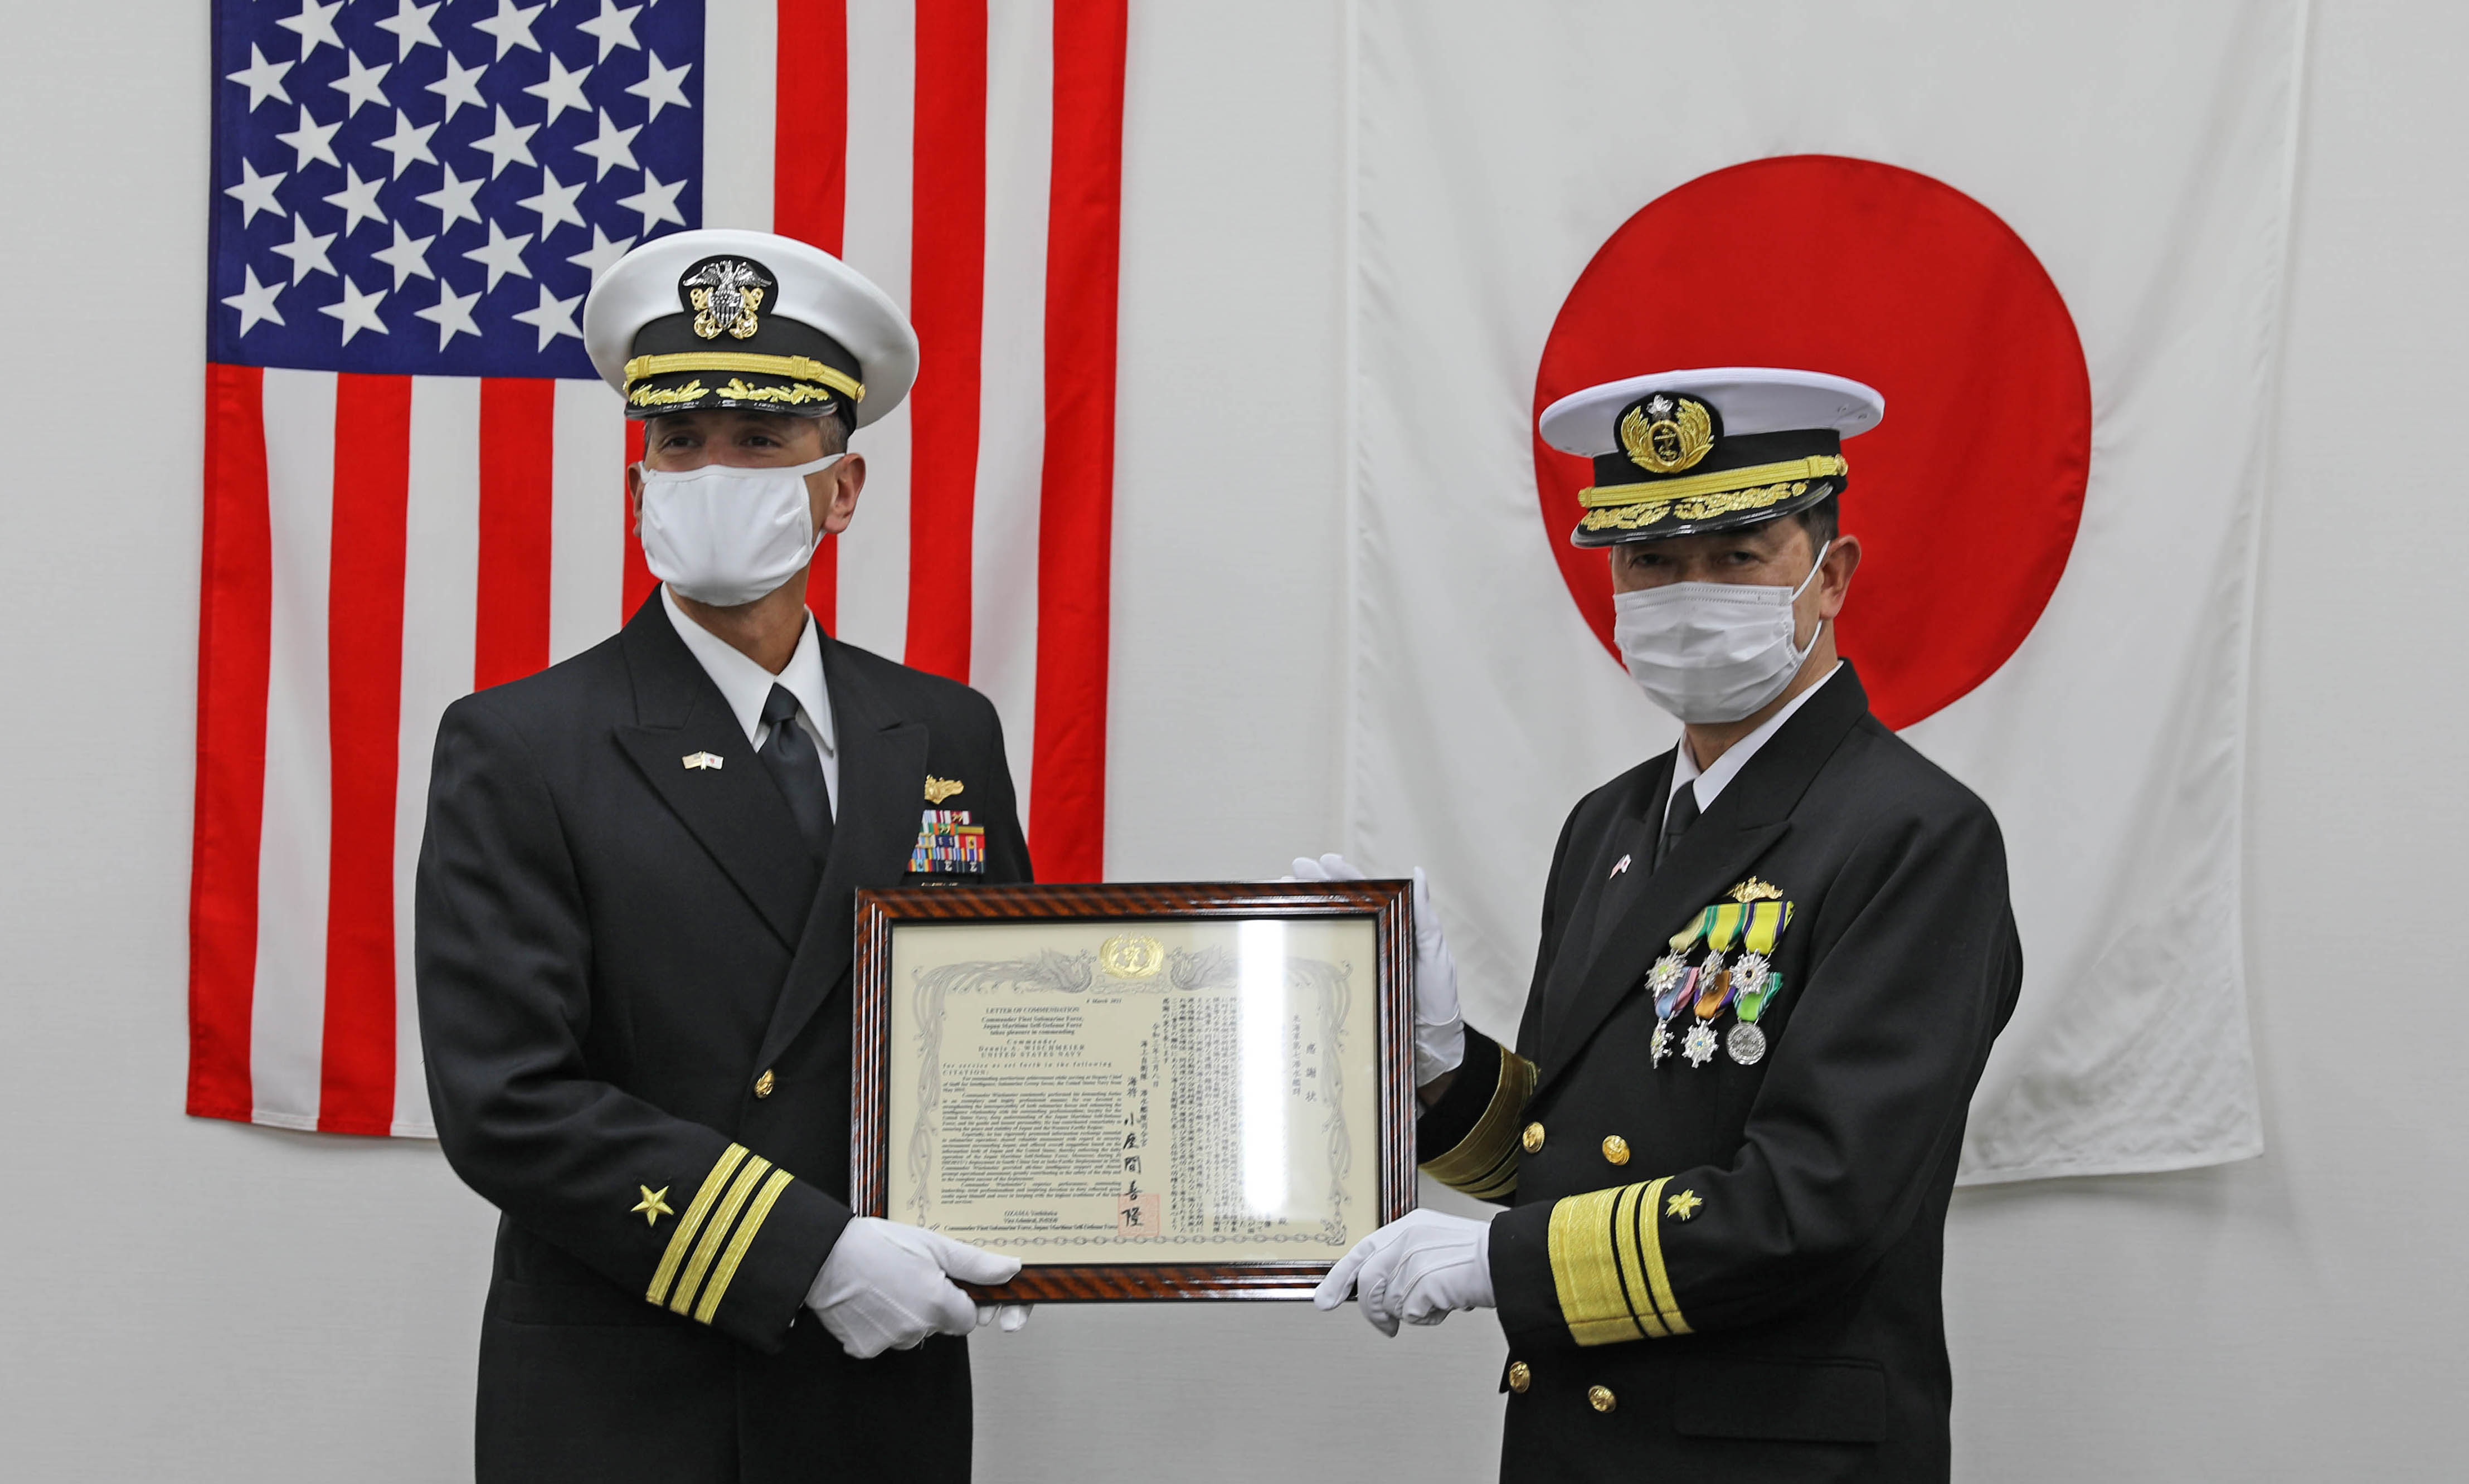 210308-N-DS193-0046 Taura, Japan (March 8, 2021) – Vice Adm. Yoshitaka Ozama, Commander, Japan Maritime Self-Defense Submarine Force, presents Commander Submarine Group 7's Intel Deputy Chief of Staff, Cmdr. Dennis Wischmeier with the Defense Cooperation Award Second Class for his distinguished achievements and contribution to the defense cooperation between Japan and United States.  America never fights alone, and we are far stronger when we stand alongside our allies and partners to uphold free and open conditions at sea.